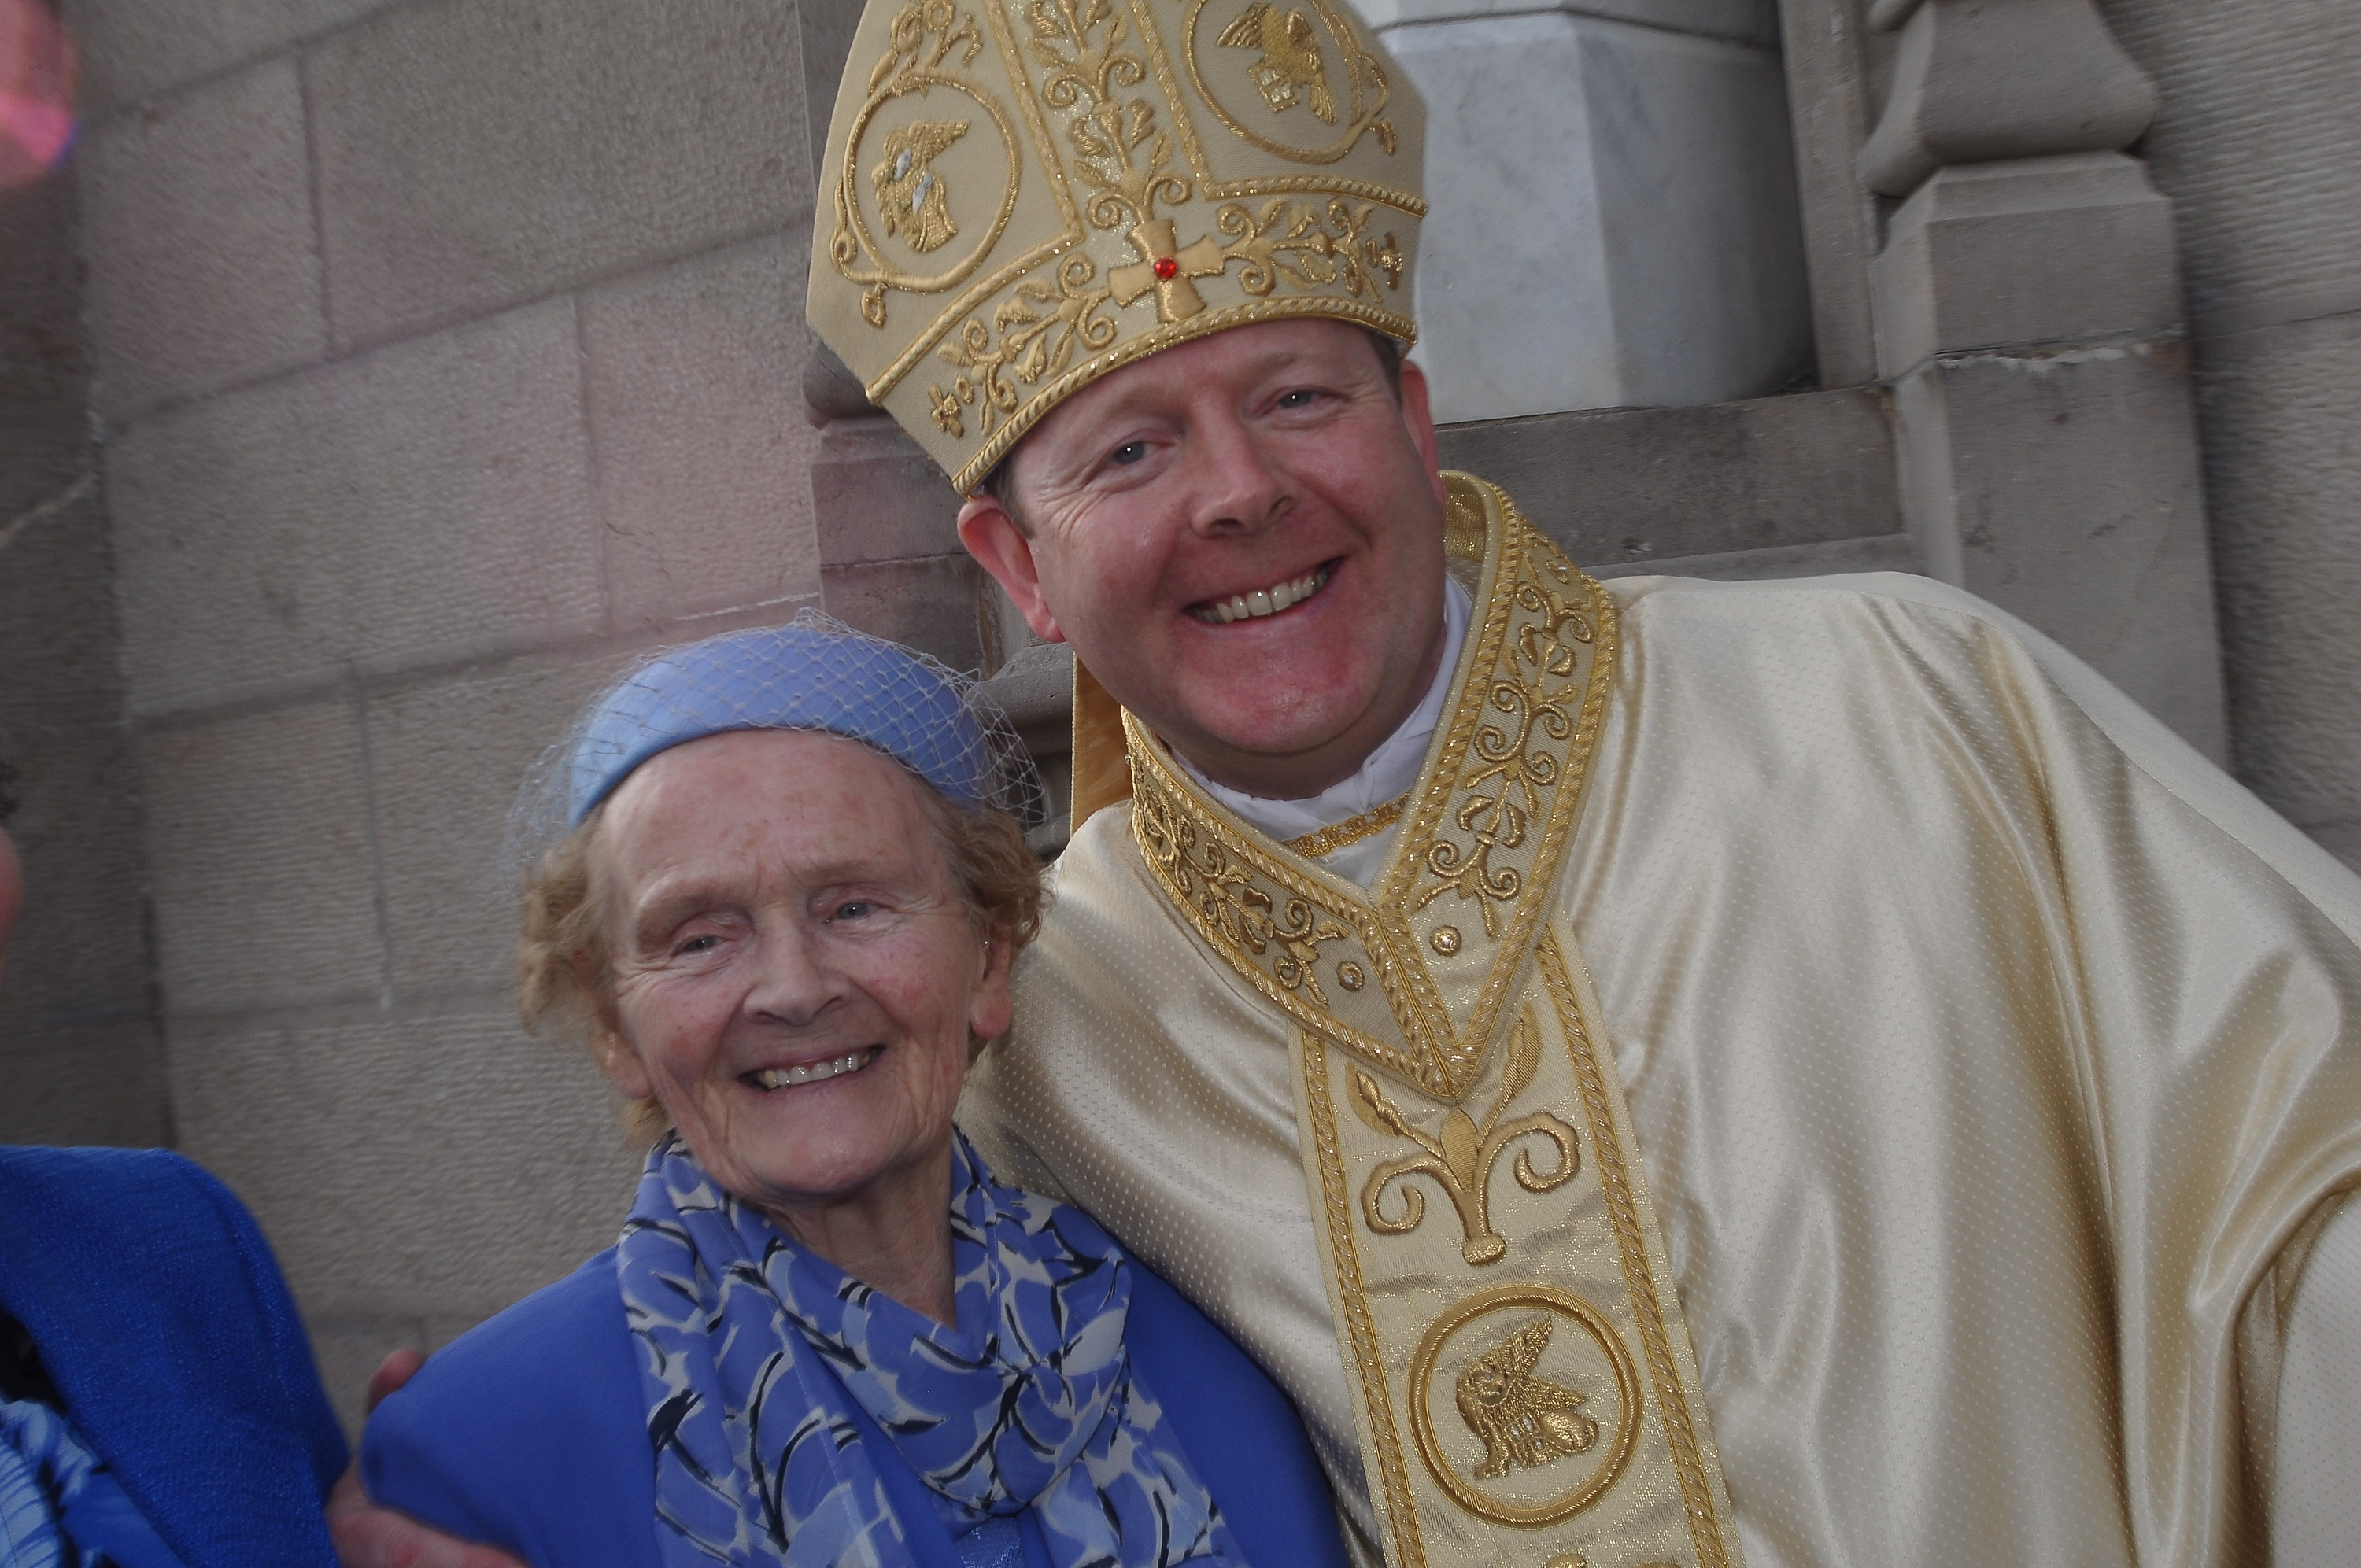 Ordination of Monsignor Eamon Martin as Coadjutor Archbishop of Armagh